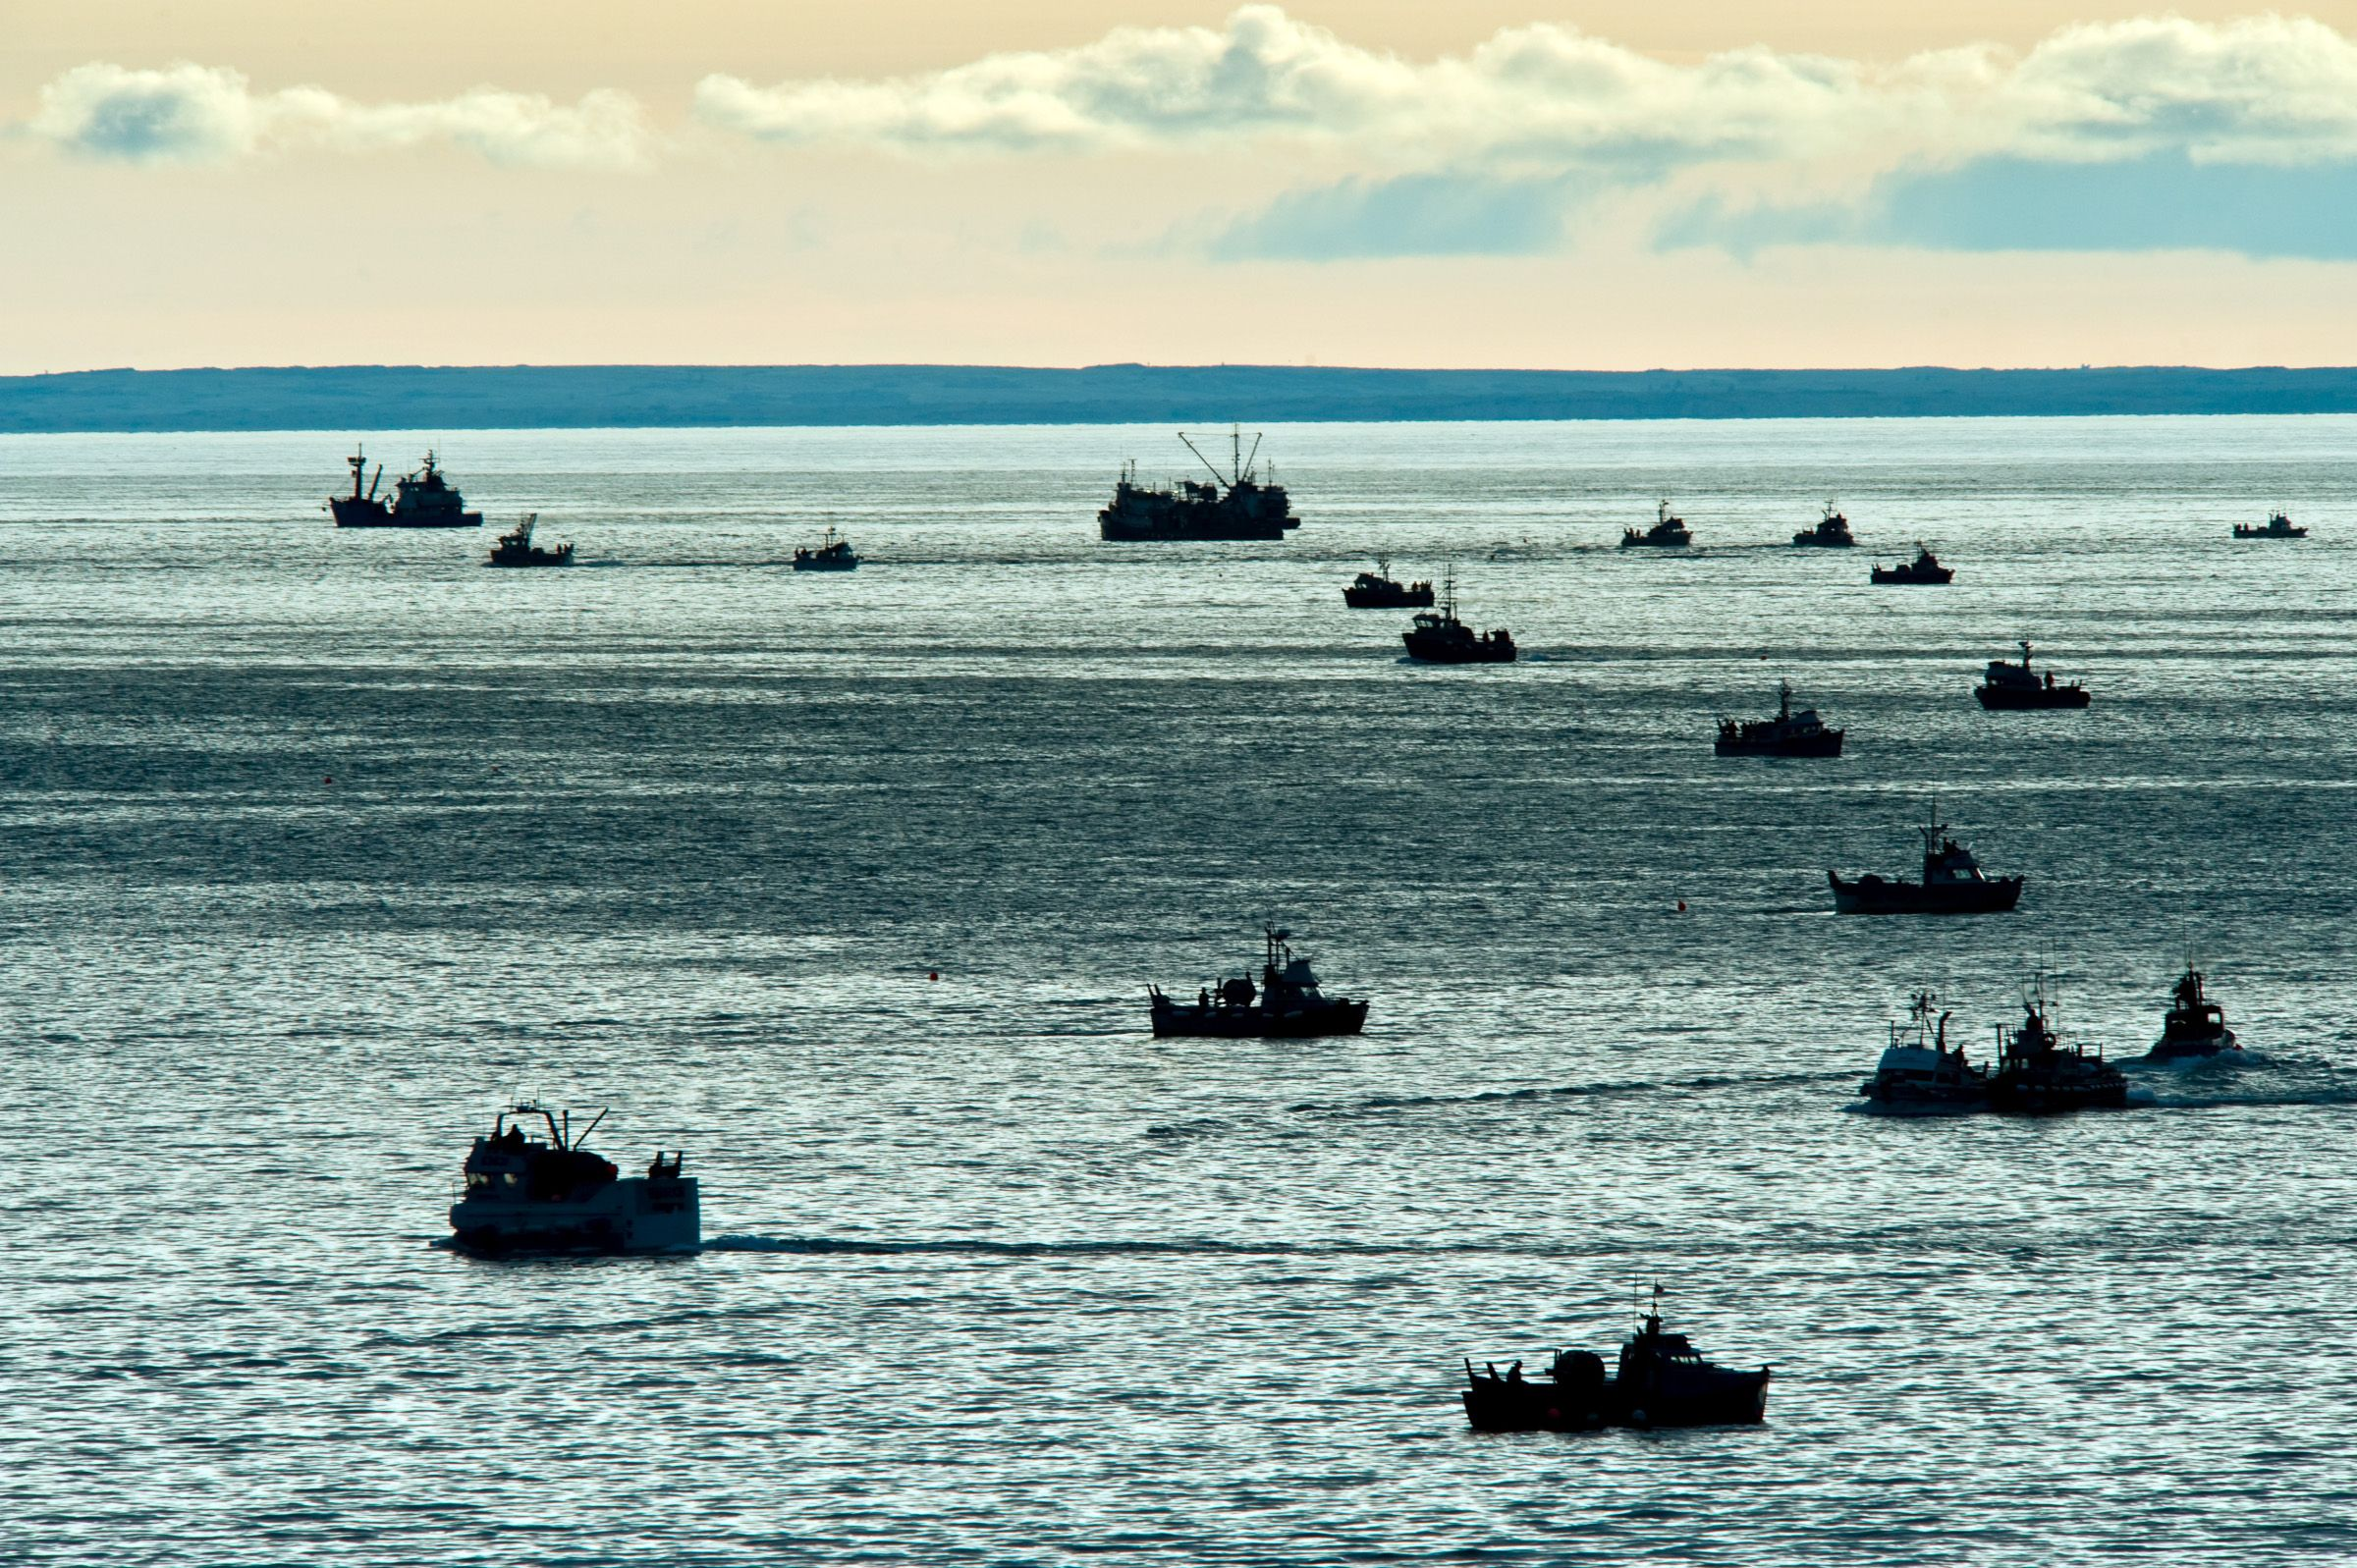 Commercial fishing fleet with larger transport boats.